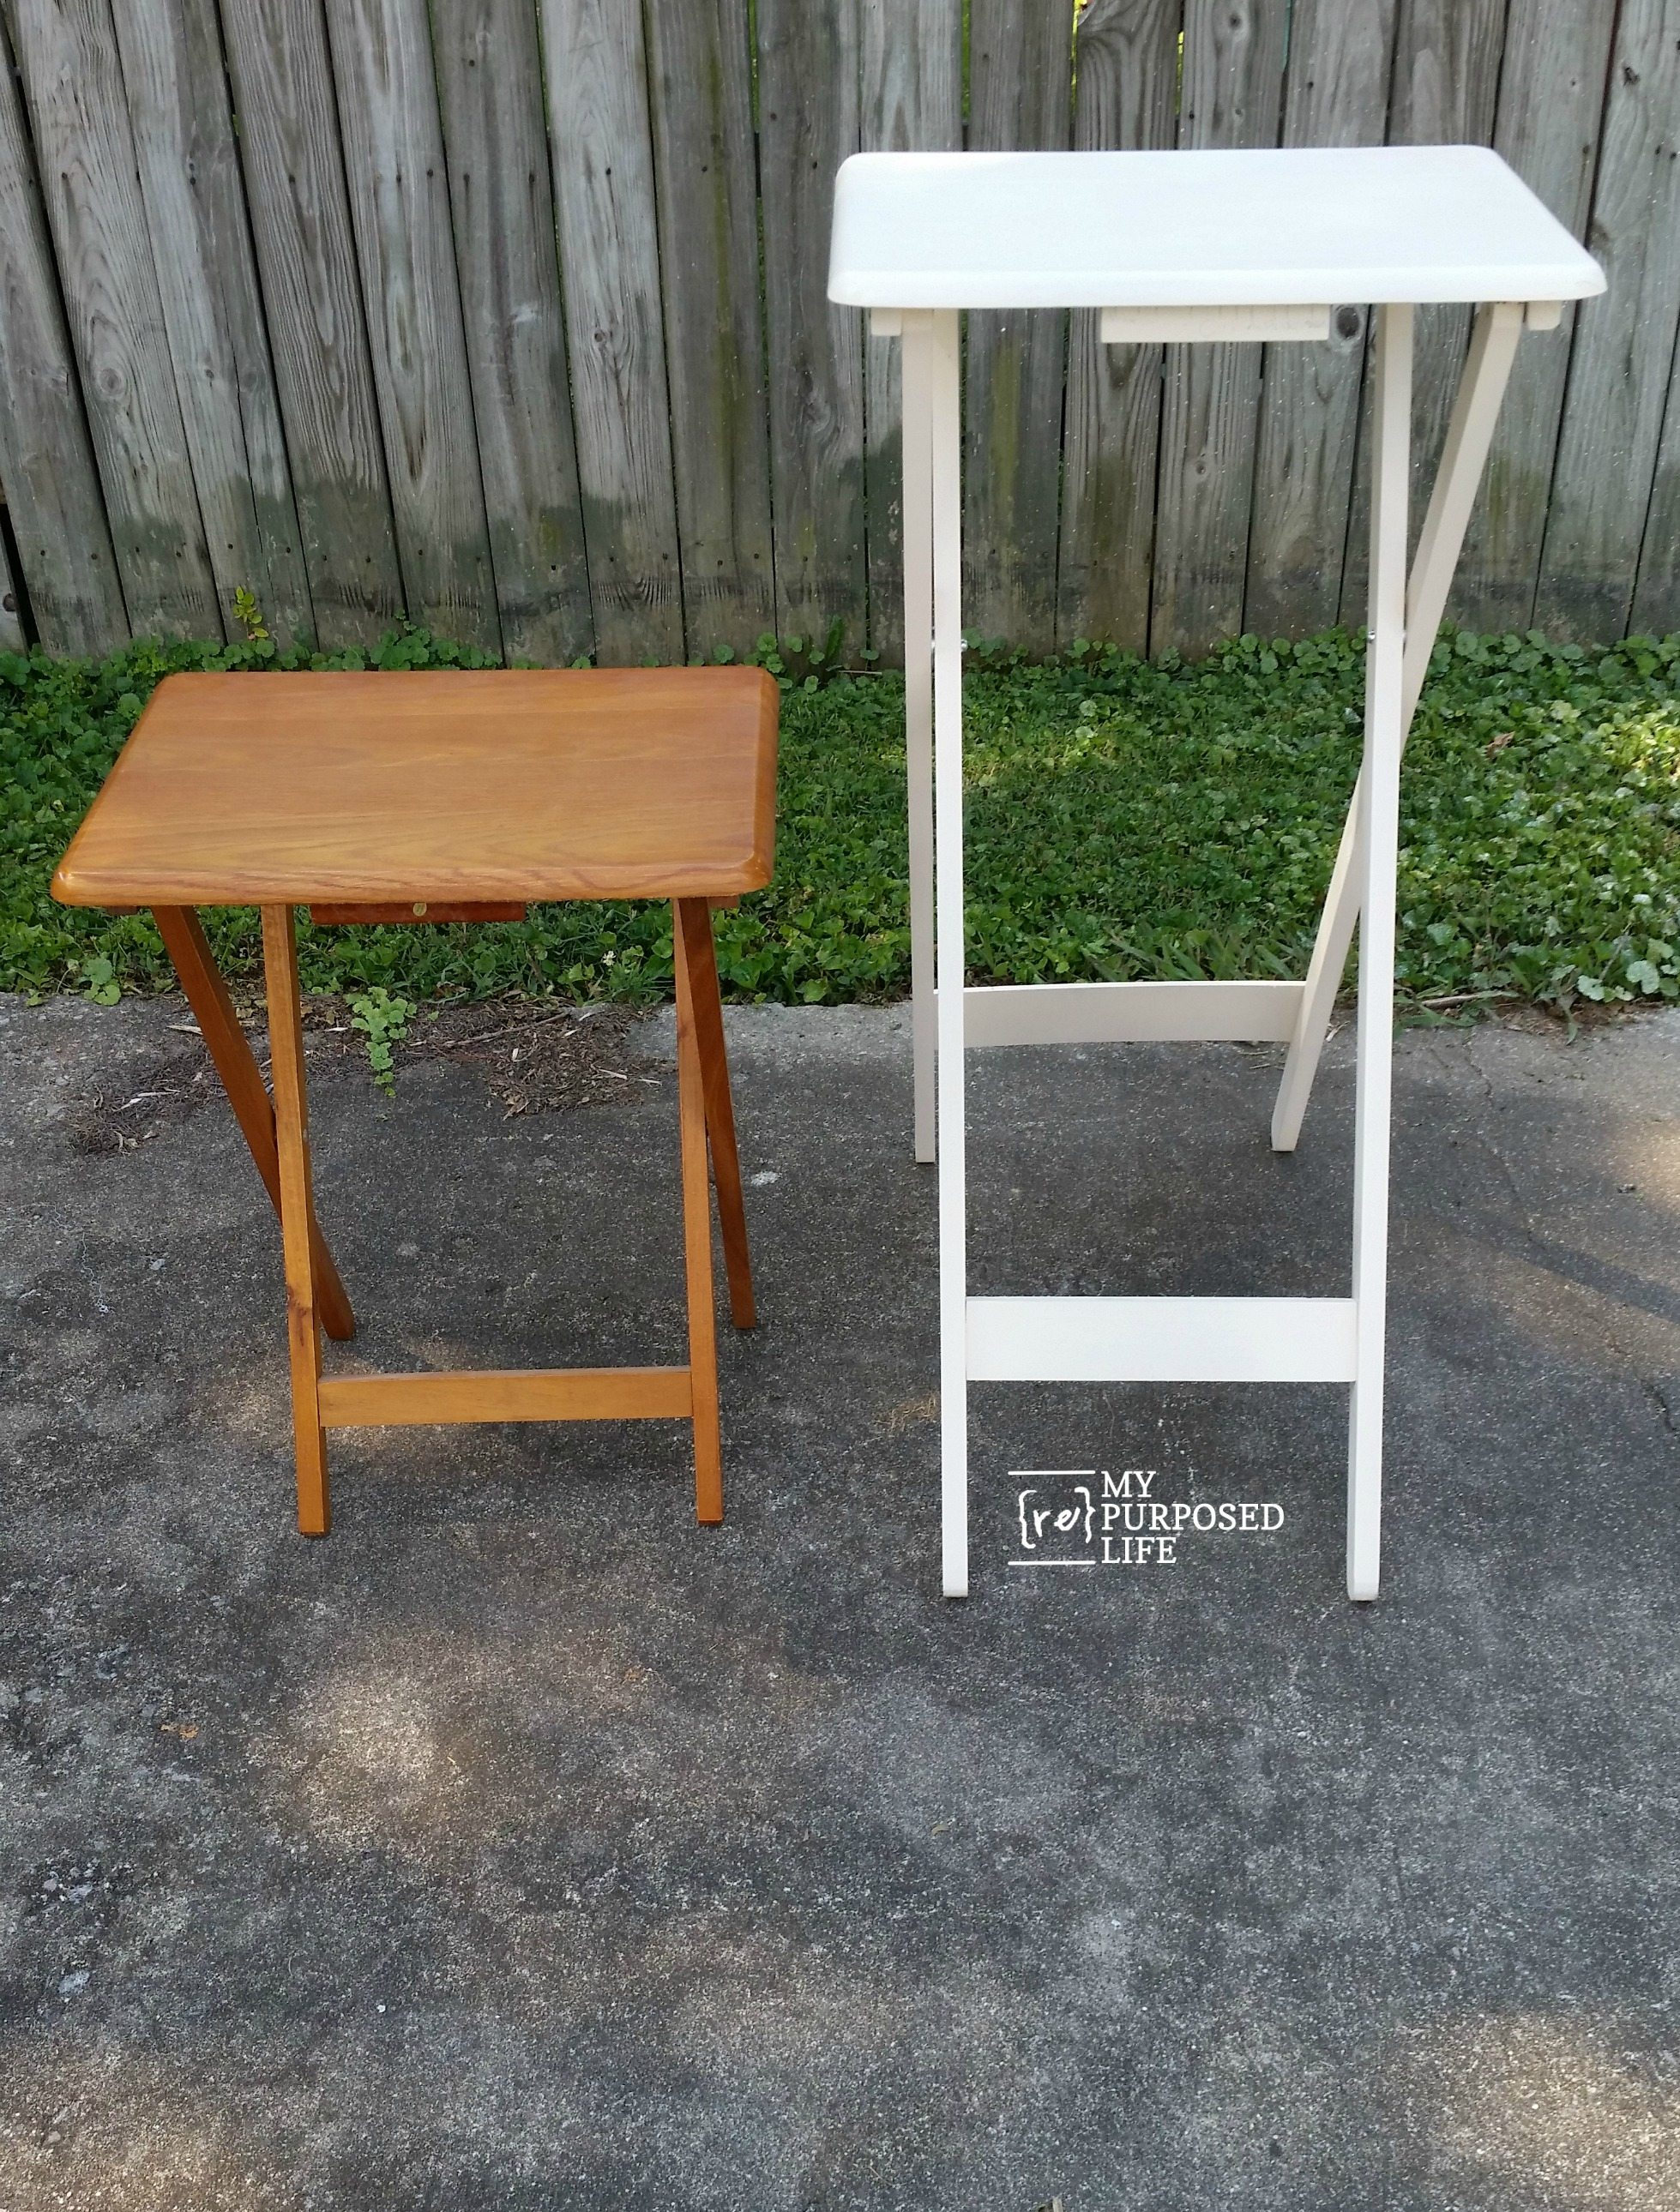 Repurposed chair ideas my repurposed life - This Before And After Gives You A Good Idea Of The Height That Was Added With The New Legs On The Tv Tray Table